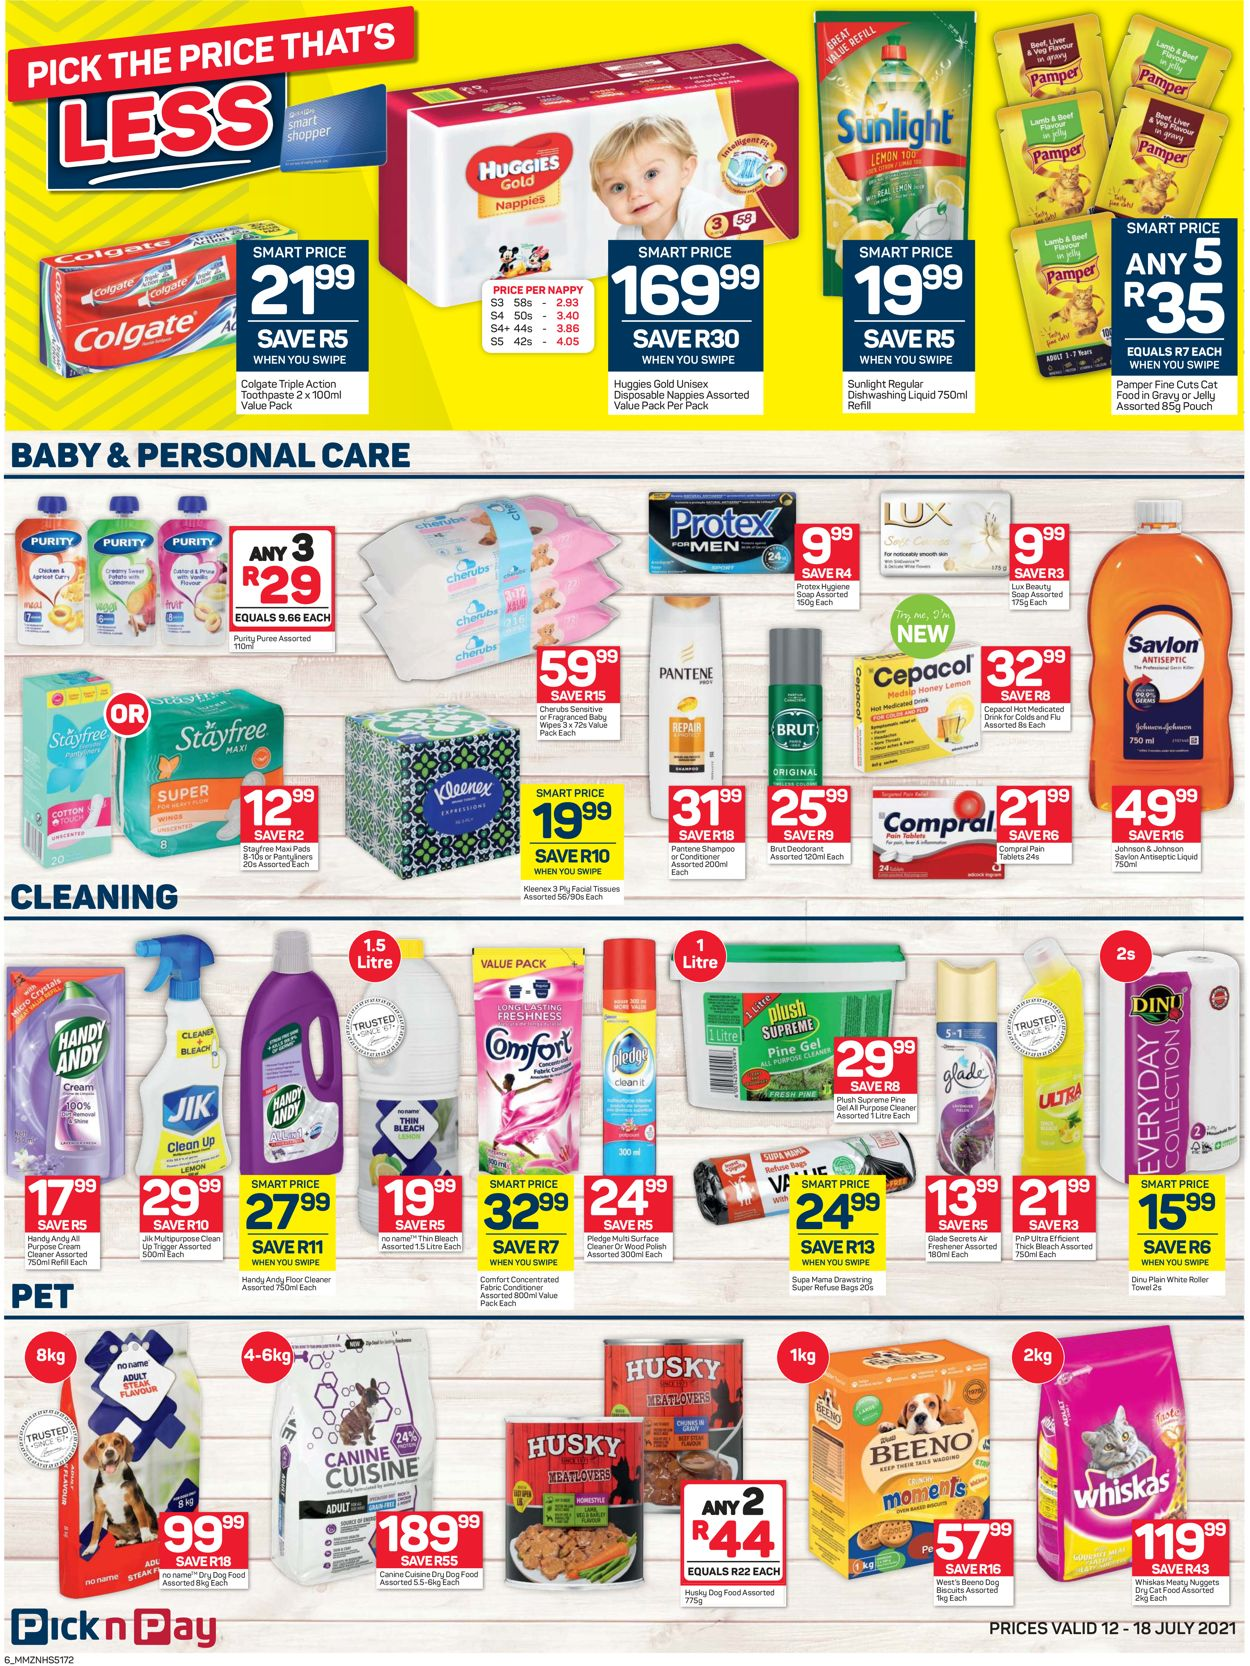 Pick n Pay Catalogue - 2021/07/12-2021/07/18 (Page 6)